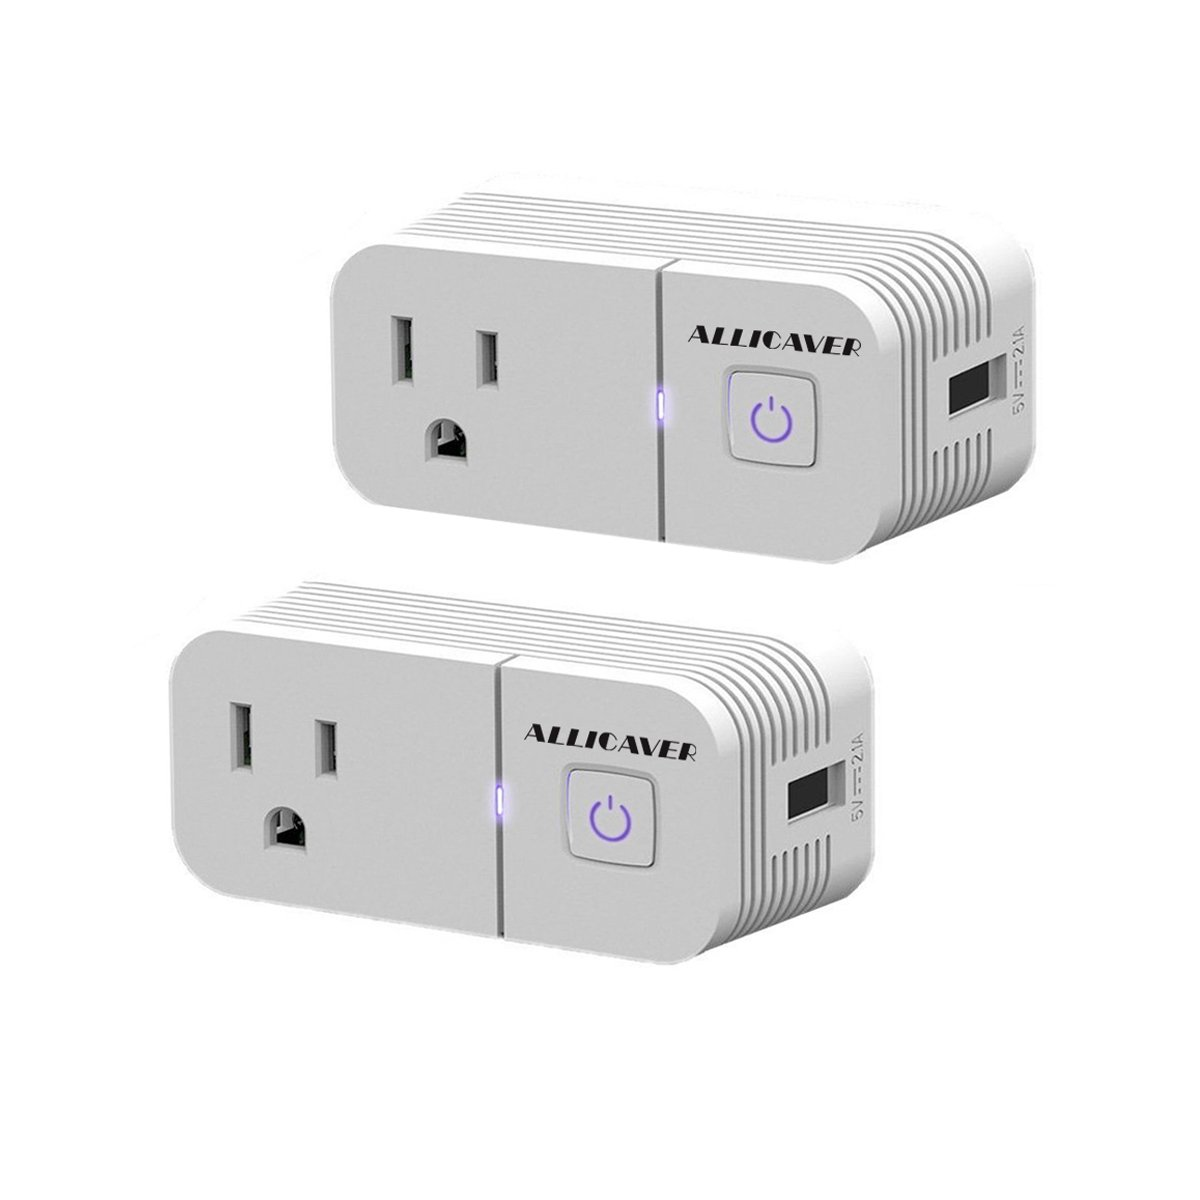 Smart Plug Compatible with Alexa,ALLICAVER 2 Pack Wifi Smart Socket with Amazon Echo & Google Assistant,Remote Control Outlet Light Switch,Timing Function with USB Charging Port 2.1A